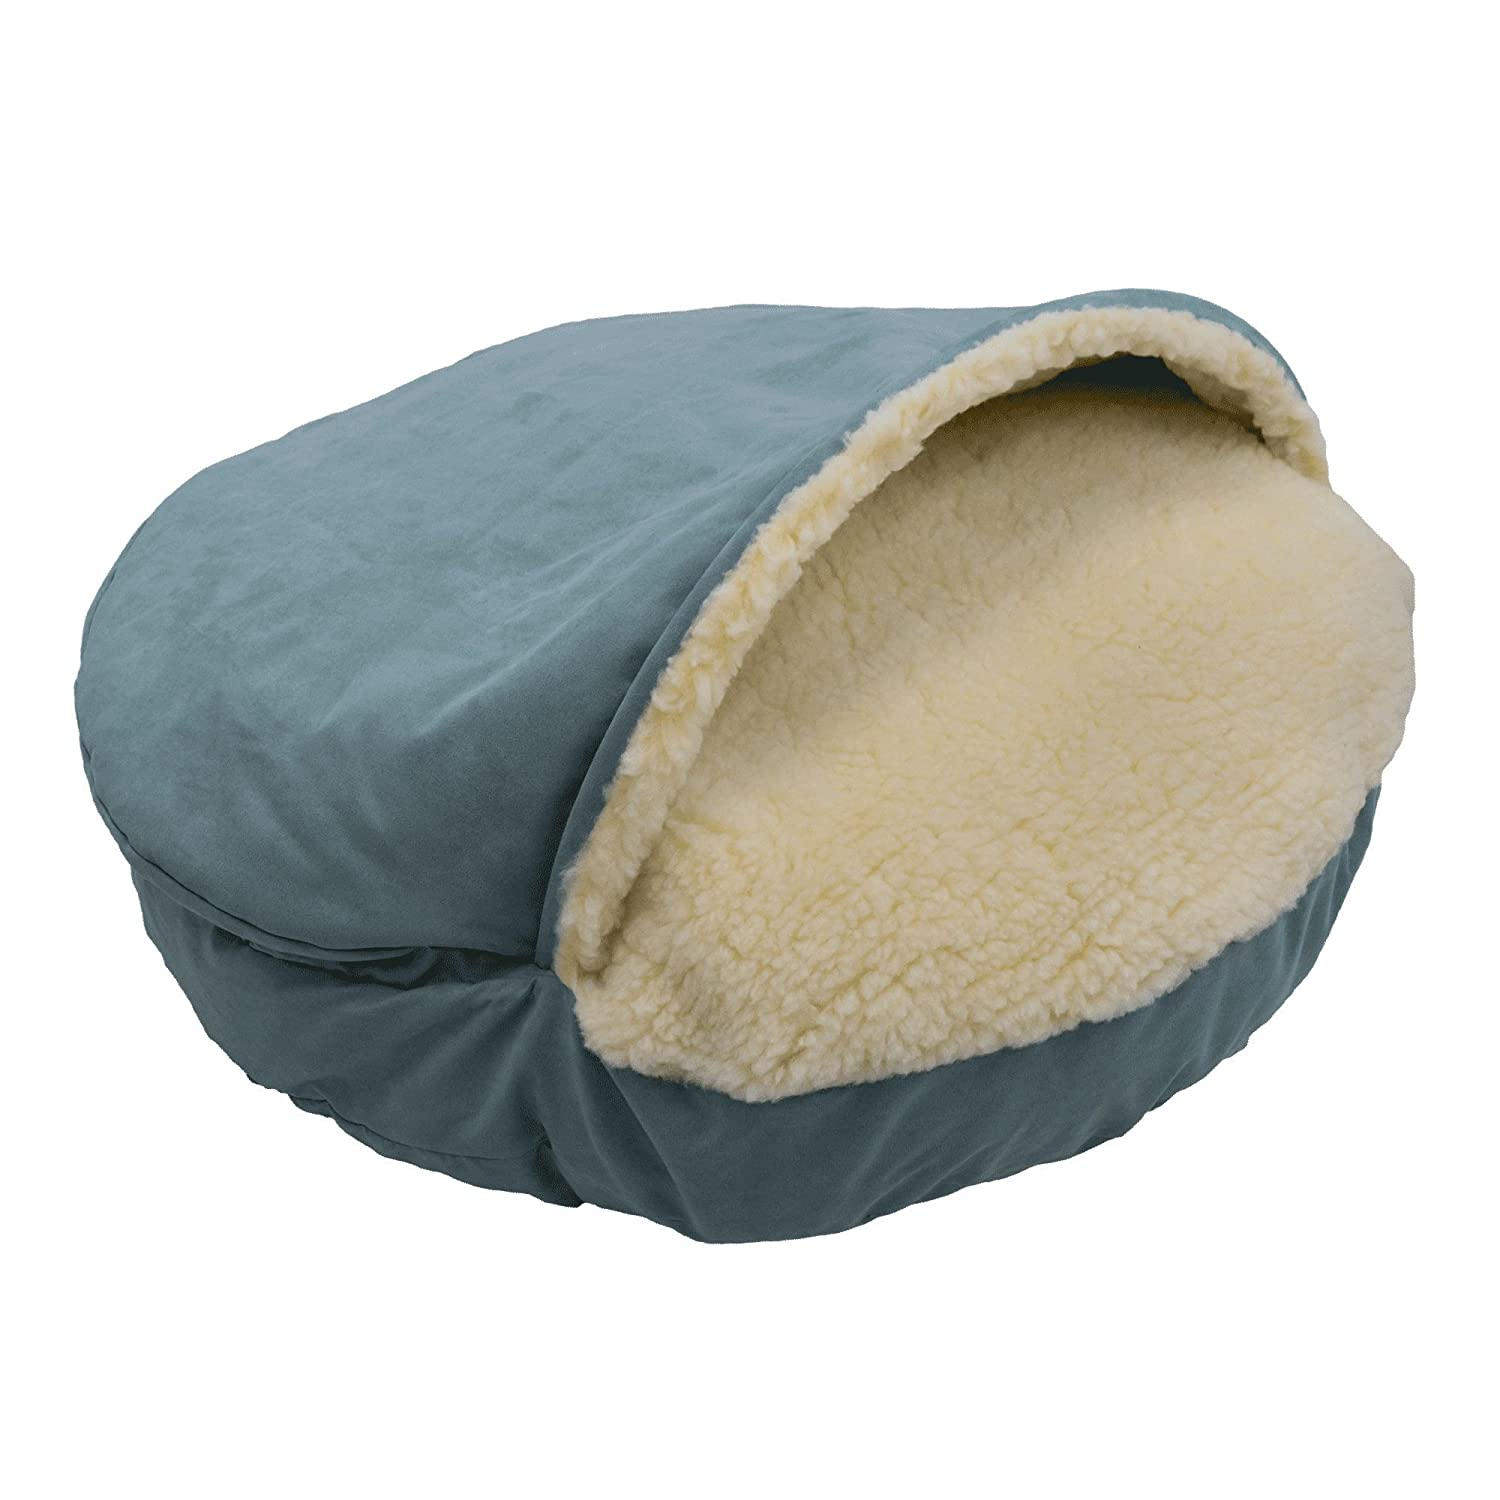 Aqua Large Aqua Large Snoozer Pet Products Luxury Cozy Cave Dog Bed with Microsuede   Large Aqua